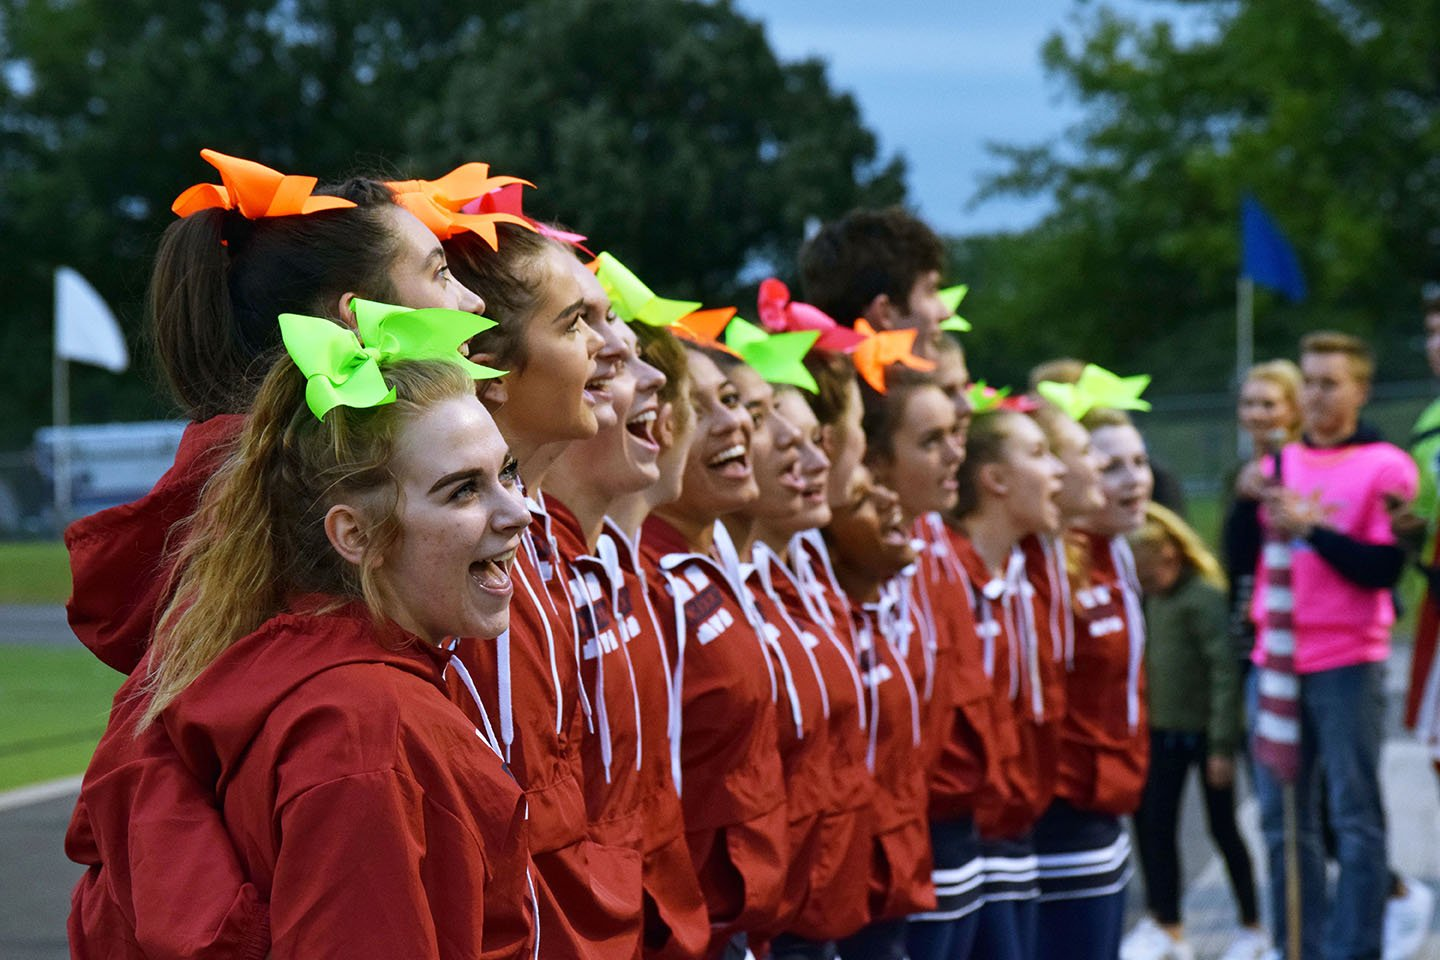 Junior Kailey Dunivan sings the Manhattan High School alma matter during the beginning of the MHS Varsity football homecoming game. At the start of every game the MHS cheer team leads the school in the alma matter, pumping up the crowd and showing school spirit. Homecoming week is filled with spirit days, a pep rally, the football game all leading up to the homecoming dance on Sep 29. Photo by Hailey Eilert